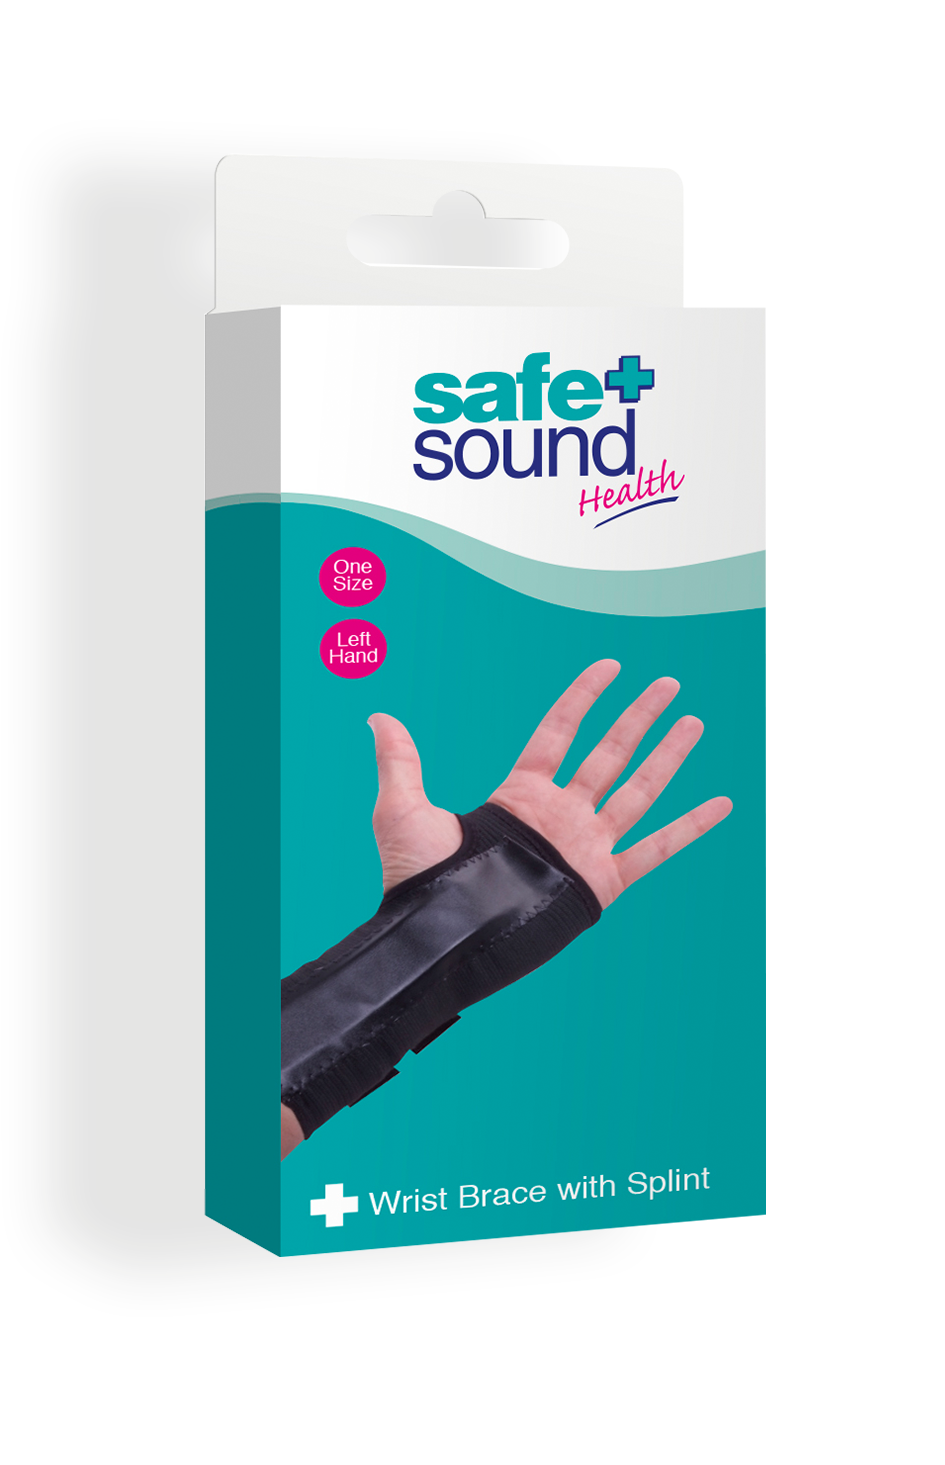 Safe and Sound Health Splinted Wrist Brace